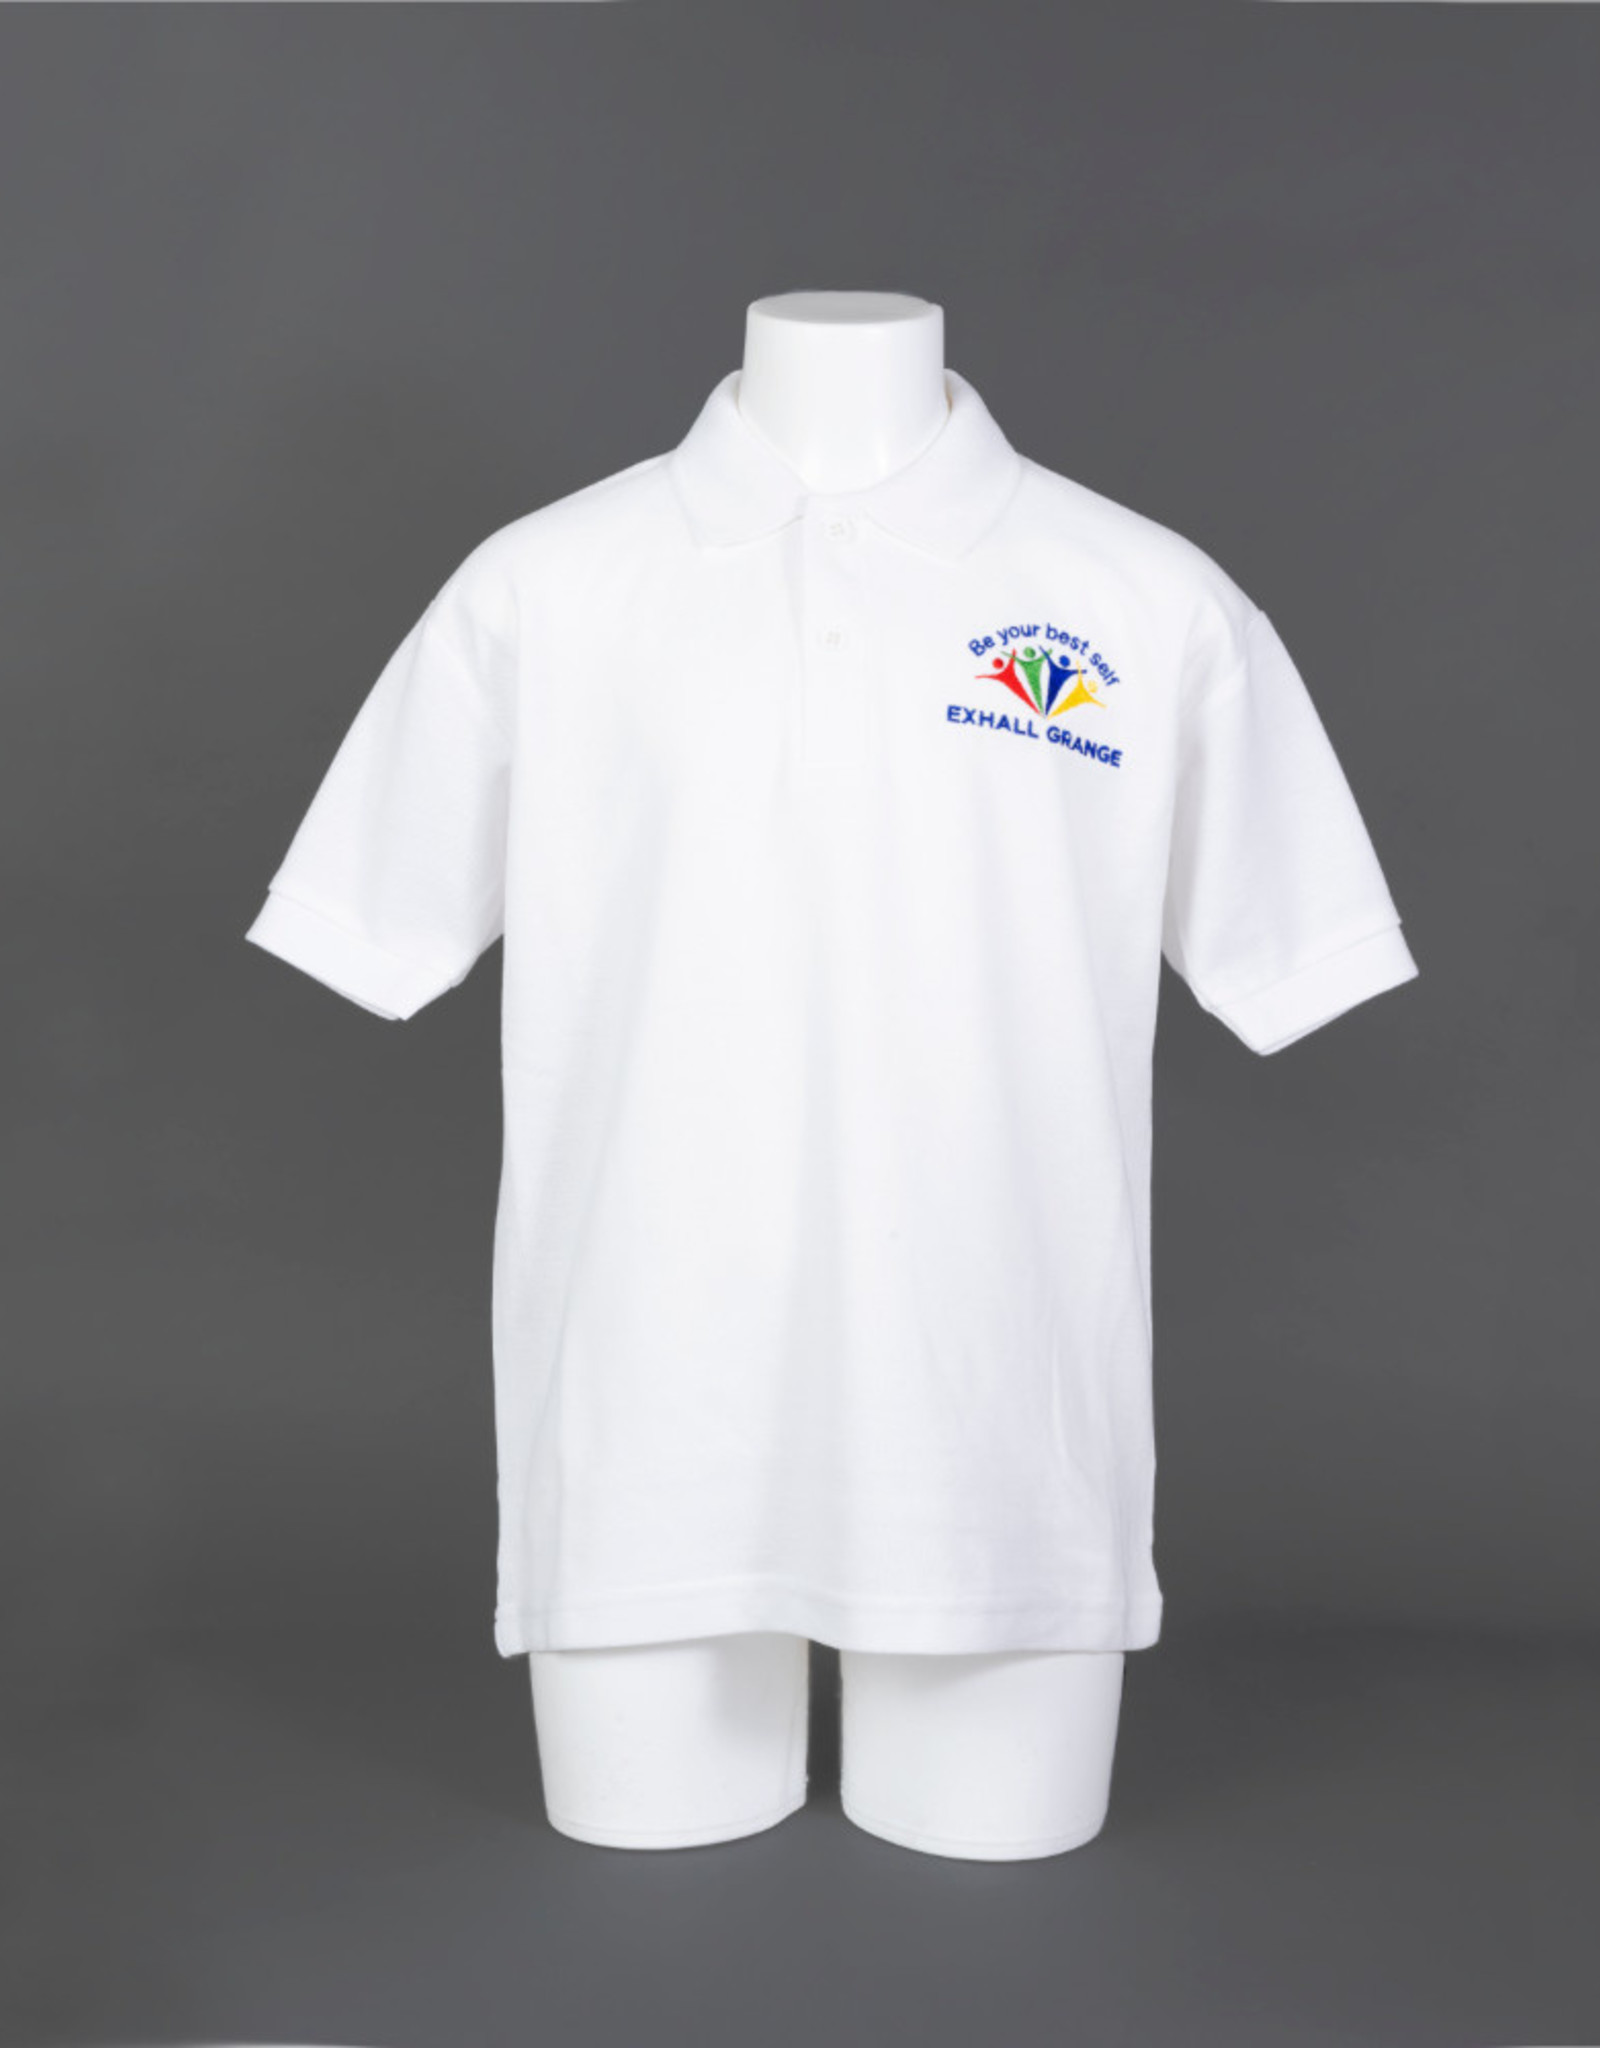 FRUIT OF THE LOOM Polo-Shirt Adult Size - Exhall Grange